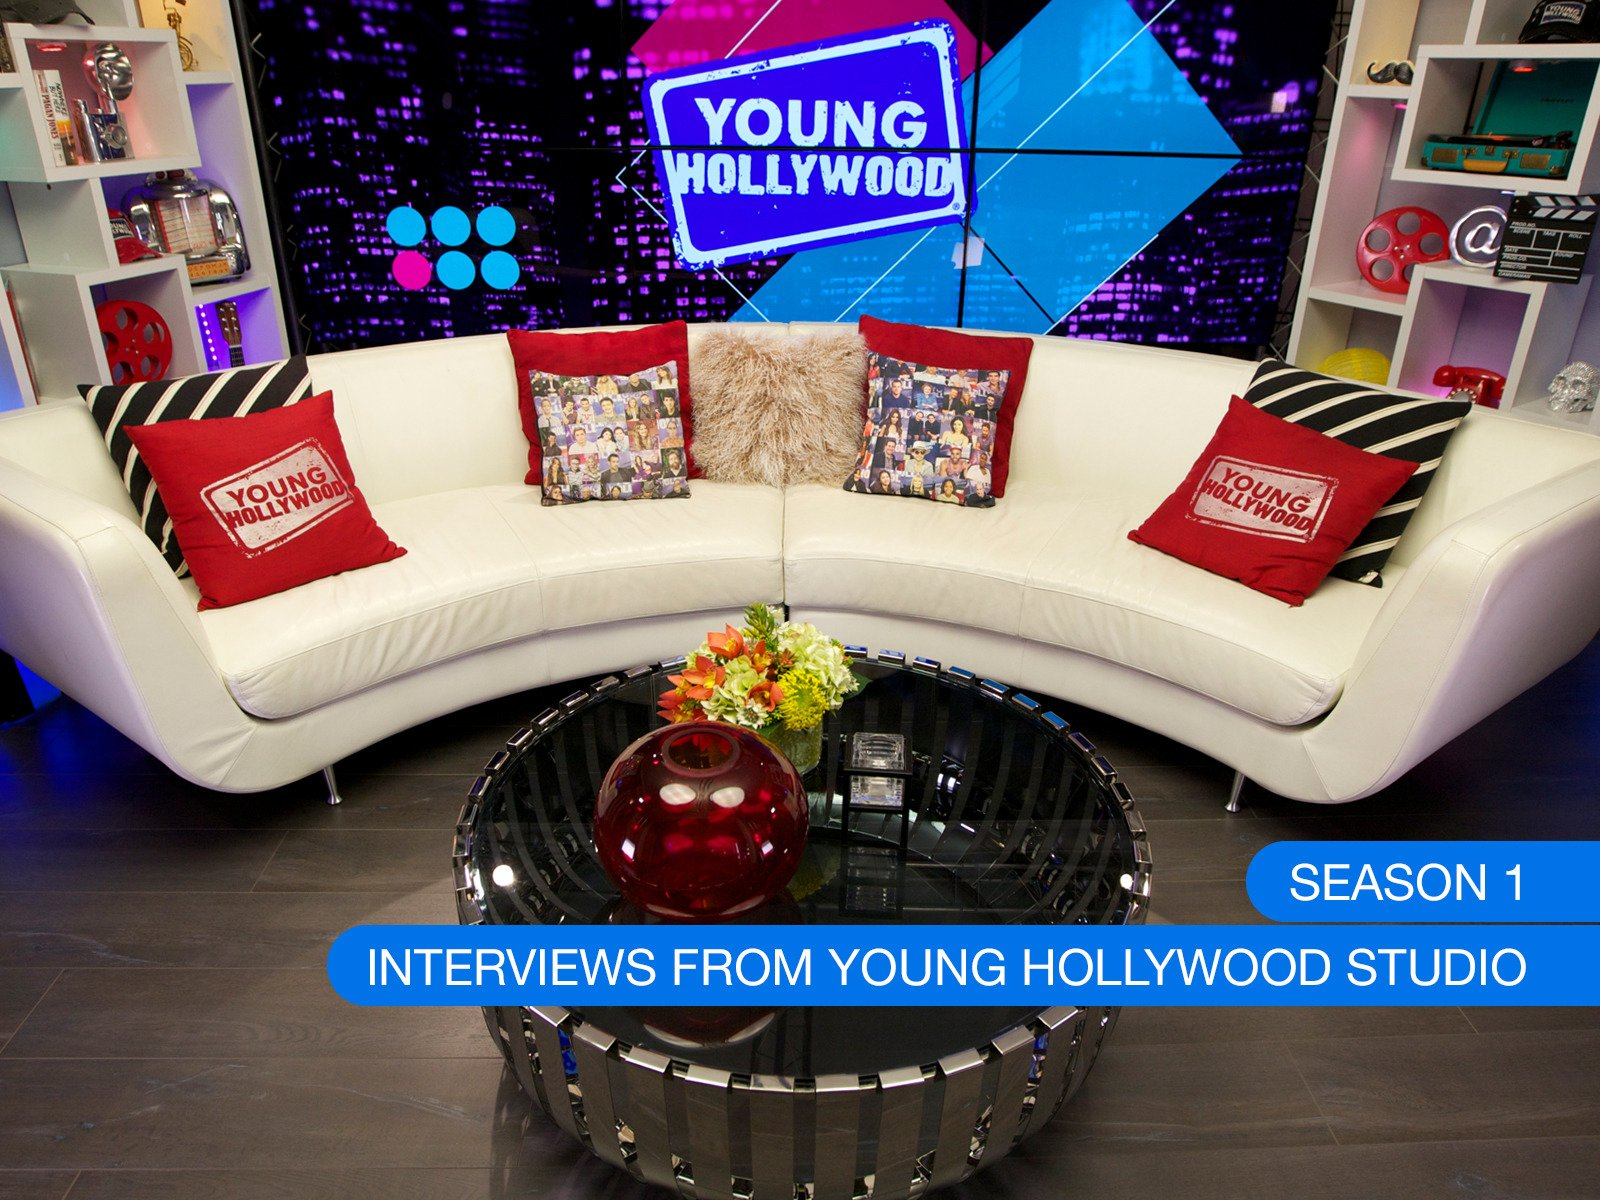 Interviews from Young Hollywood Studio